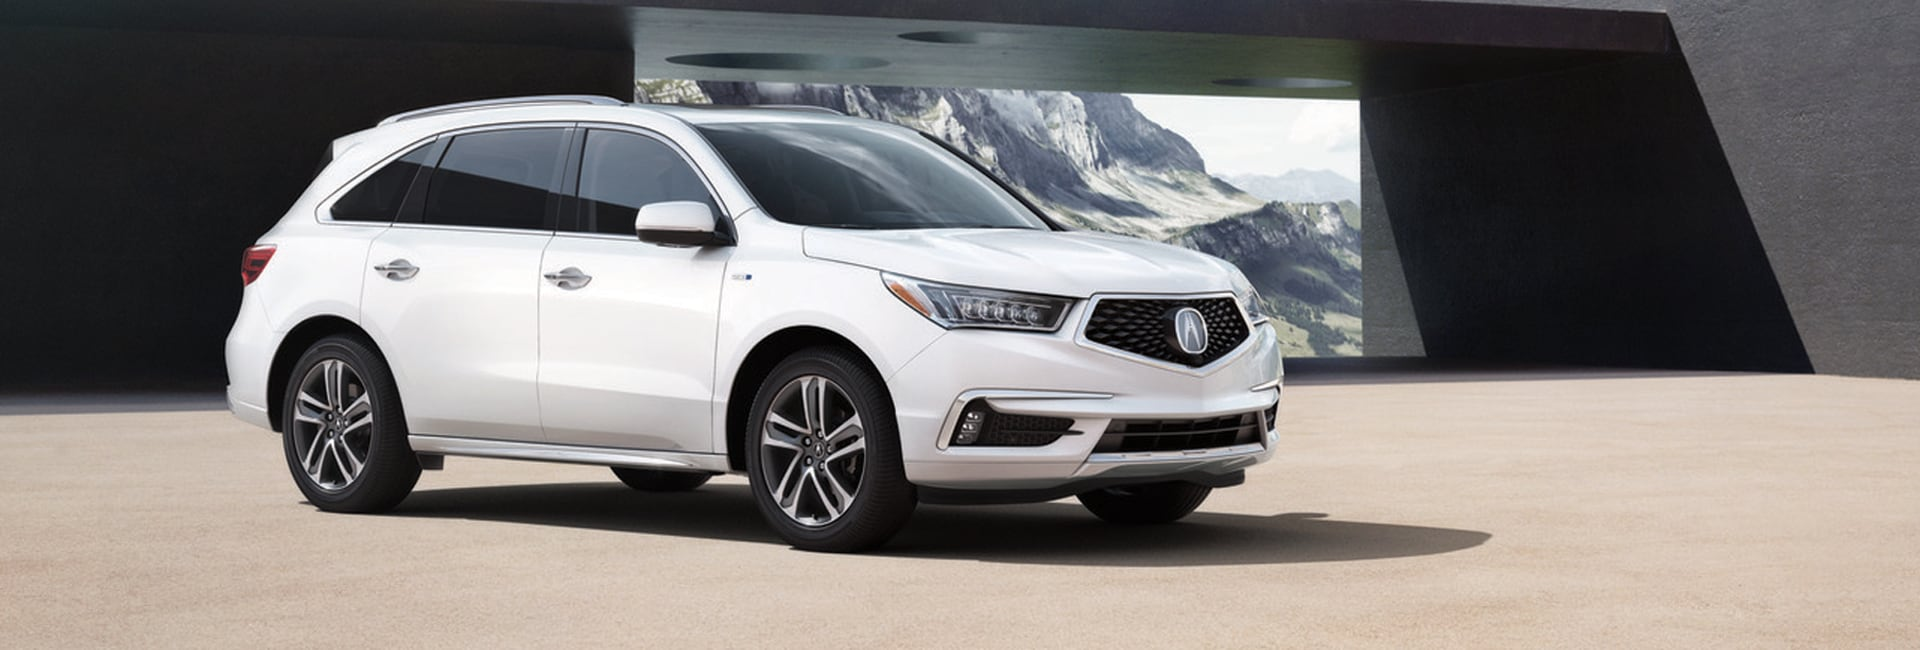 2020 Acura MDX Exterior Features